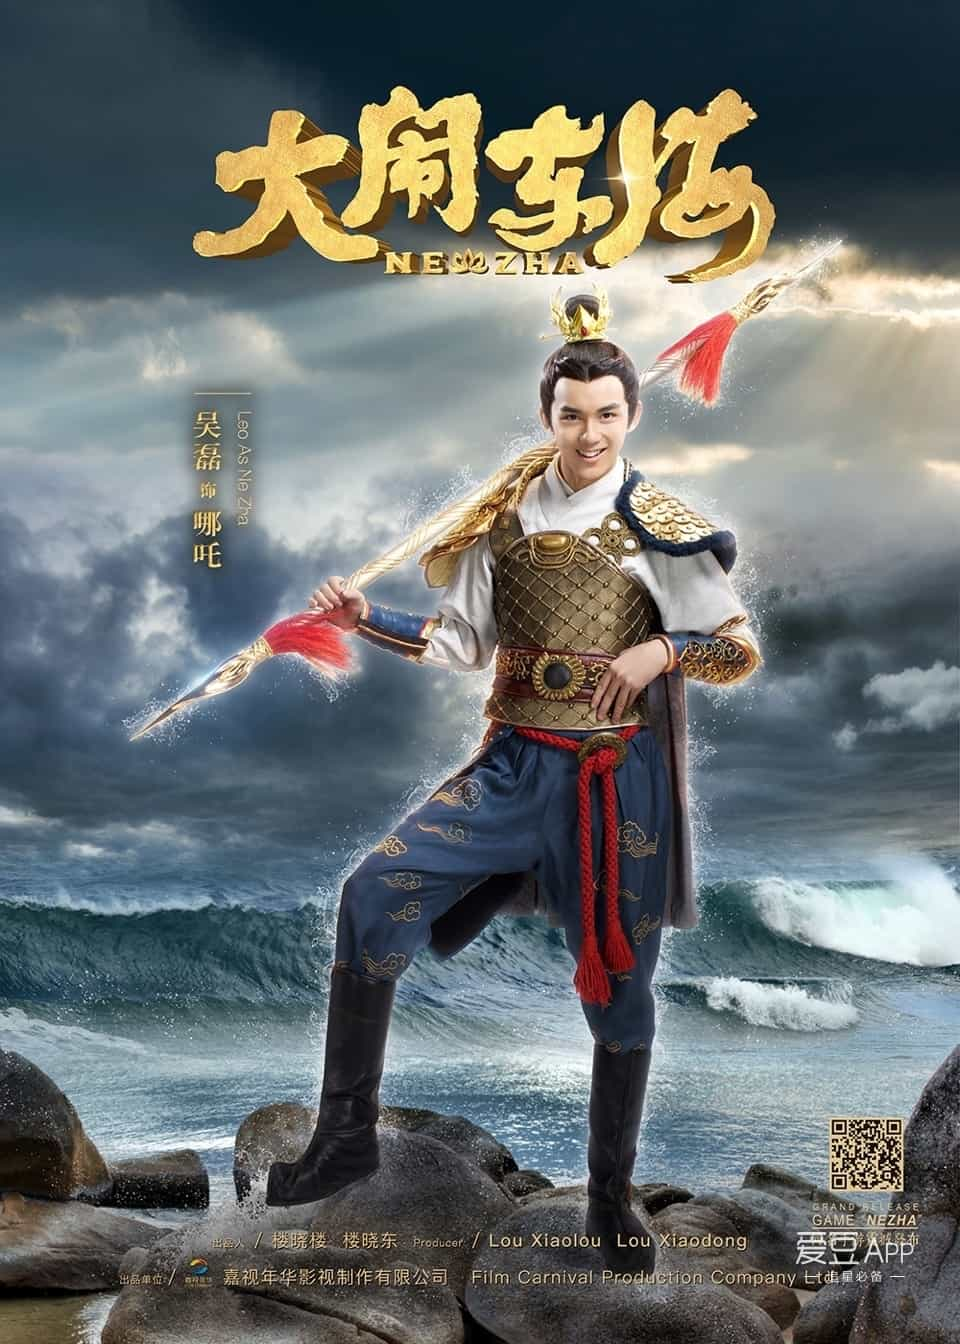 Ne Zha gets a PG age rating in the UK for mild violence, threat, injury detail, language, rude humour